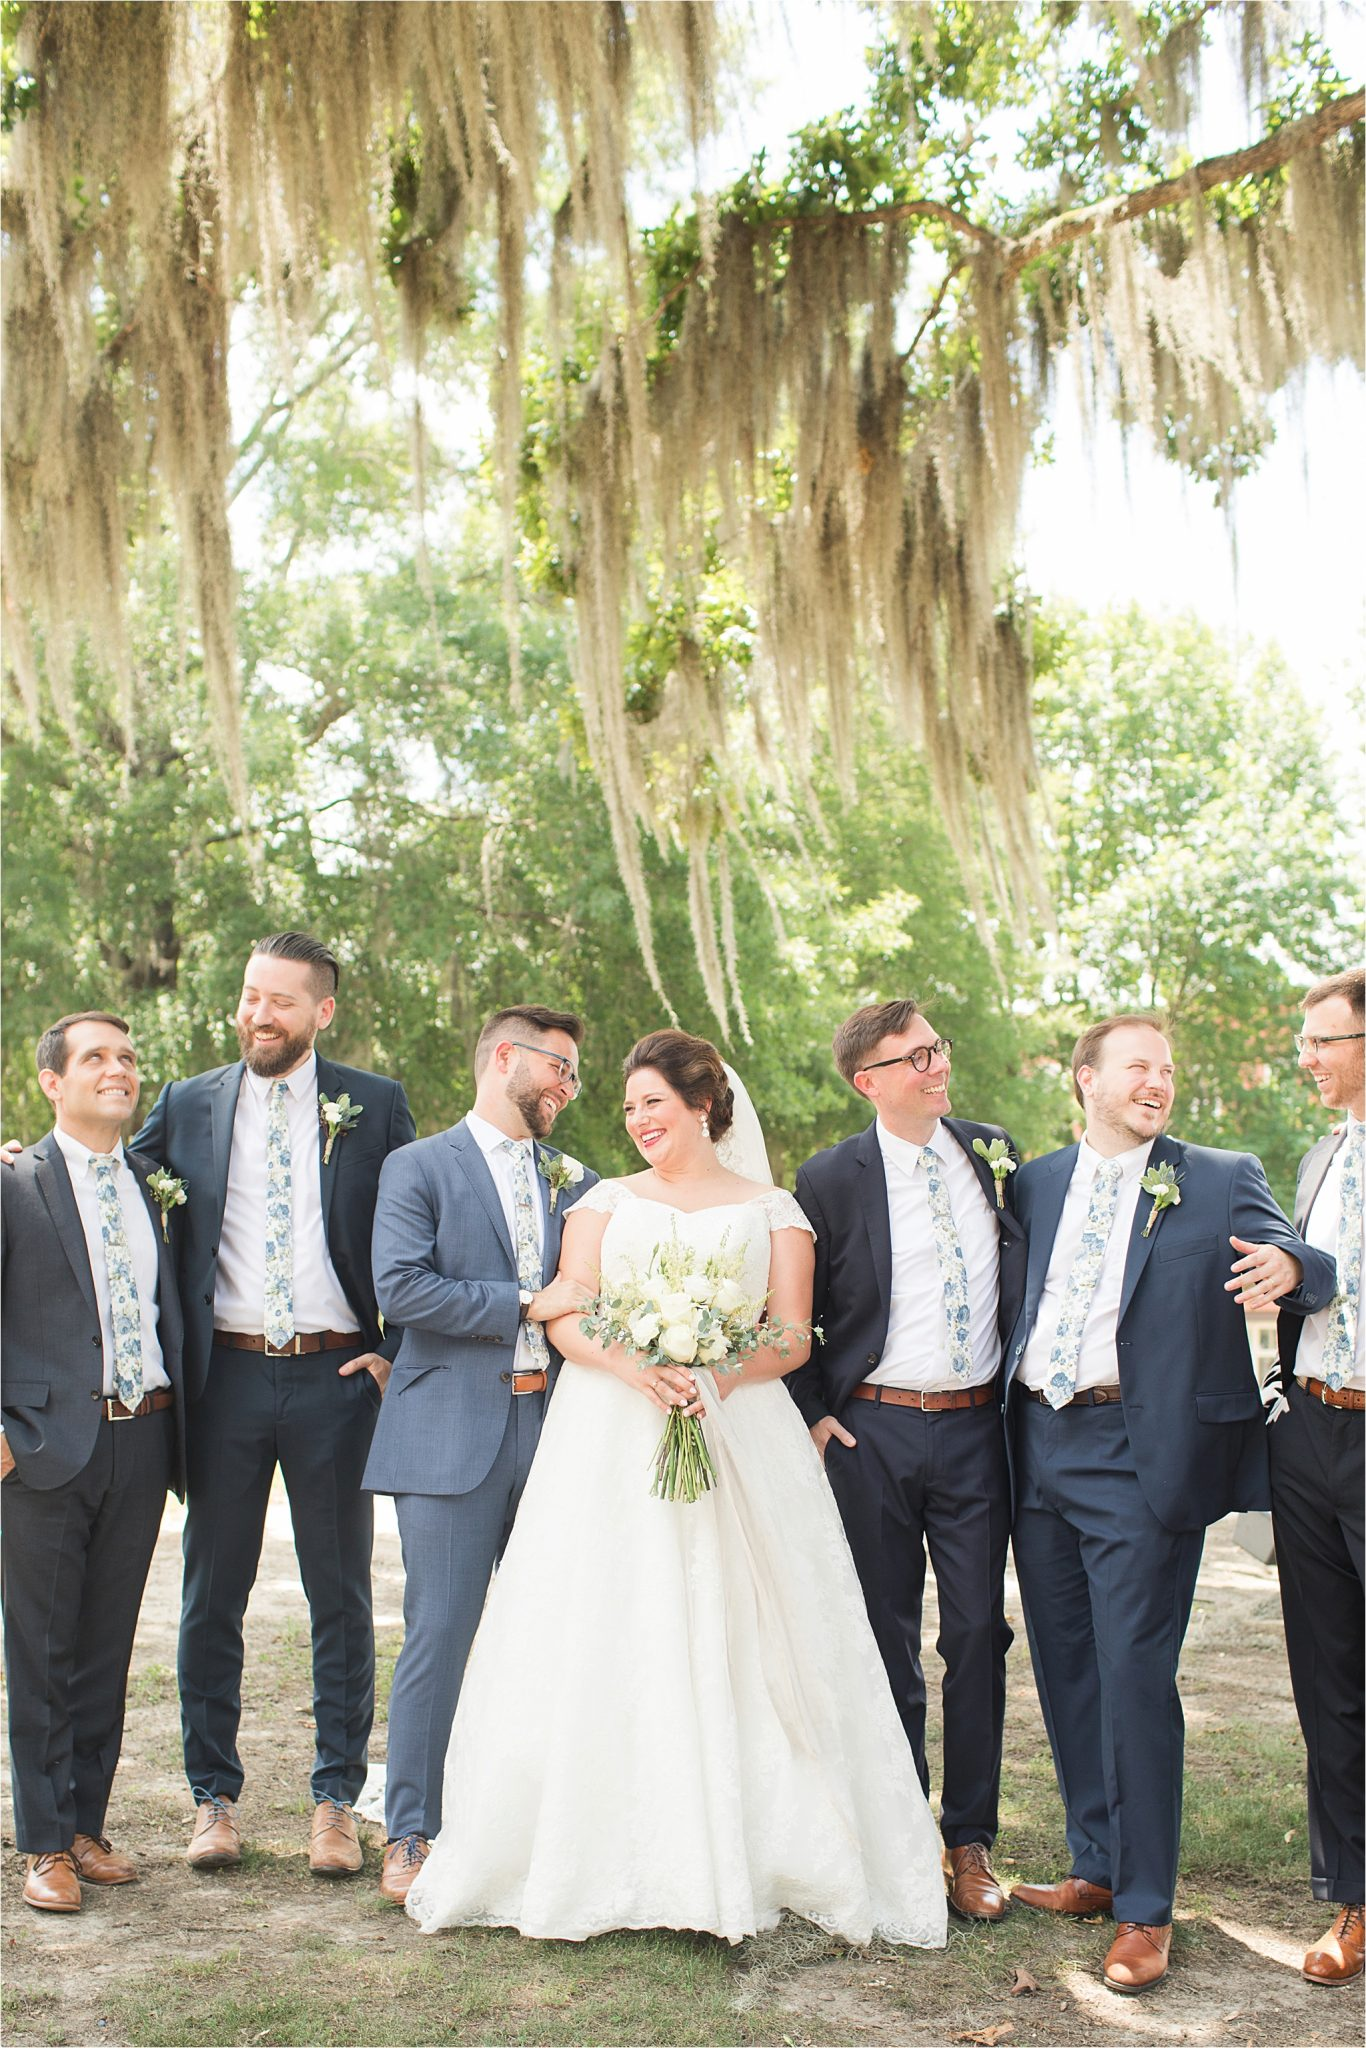 Pastel Themed Wedding-The Chapel at the Waters-Montgomery Alabama Photographer-Miles & Meredyth-Blue Themed Wedding-Navy Blue Groomsmen-Bride and groomsmen-Wedding Dress